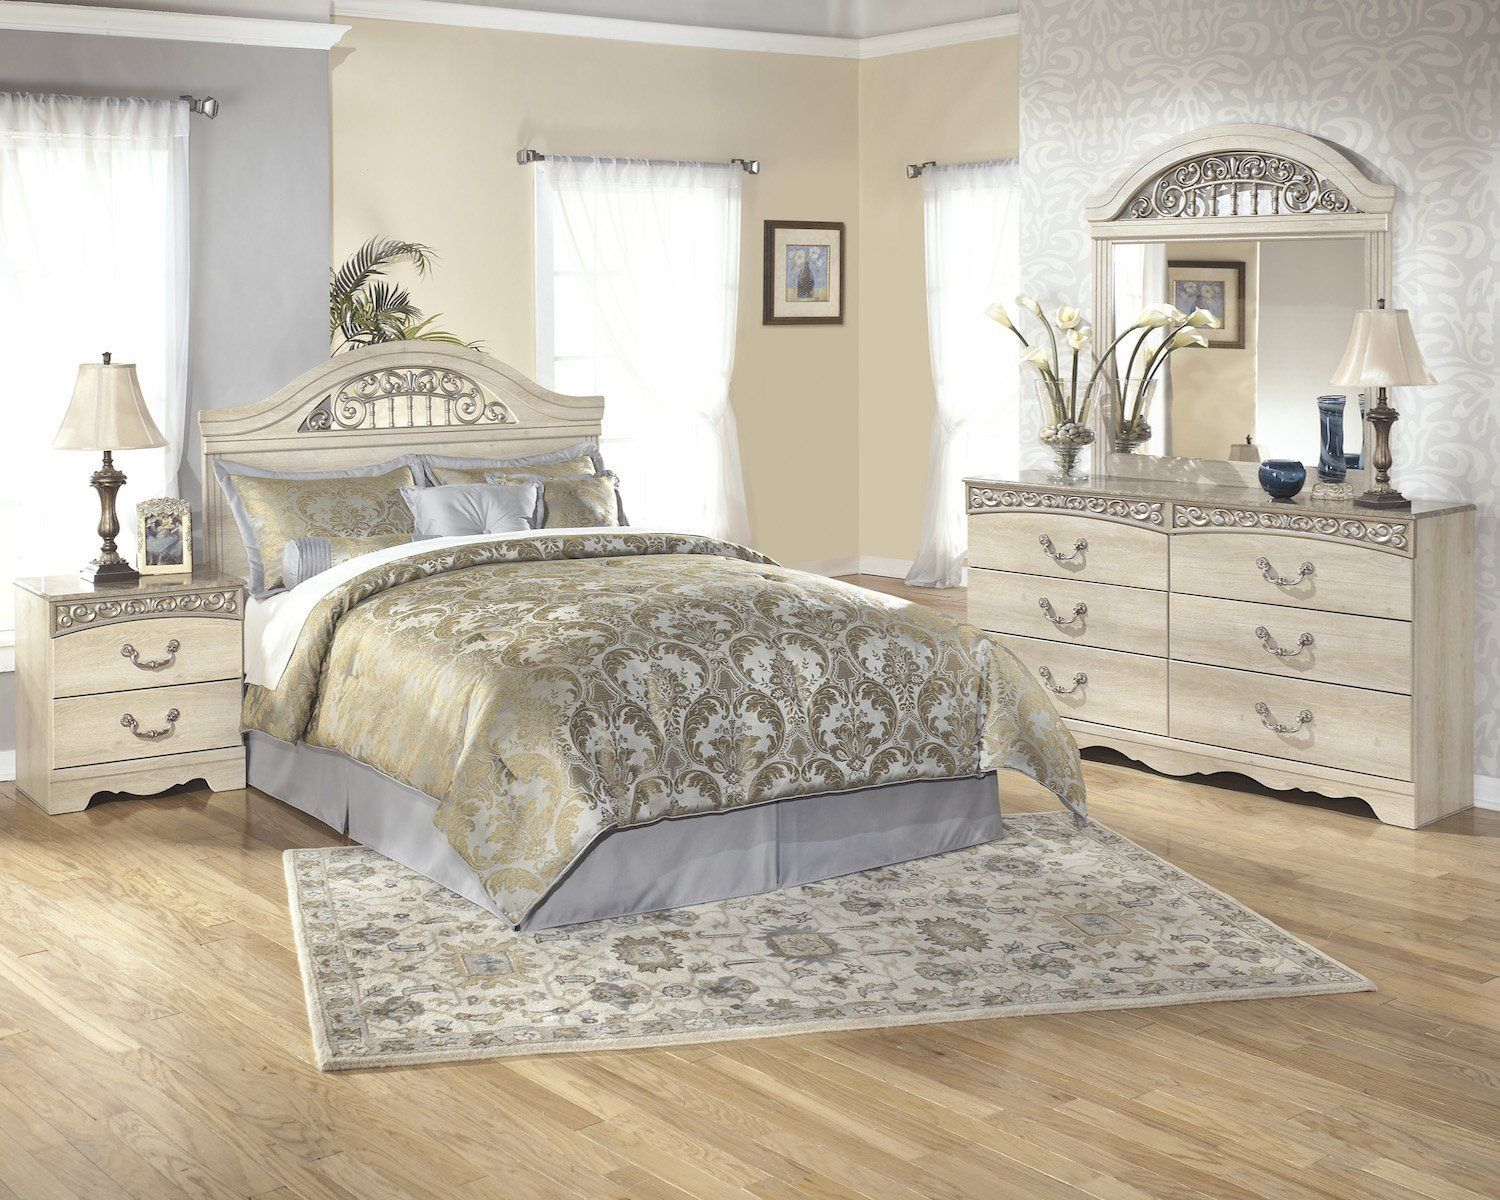 Ashley Catalina 5pc Queen Full Panel Headboard Bedroom Set With Two Nightstands In Antique White Details Can Be Found By Clicking On The Image